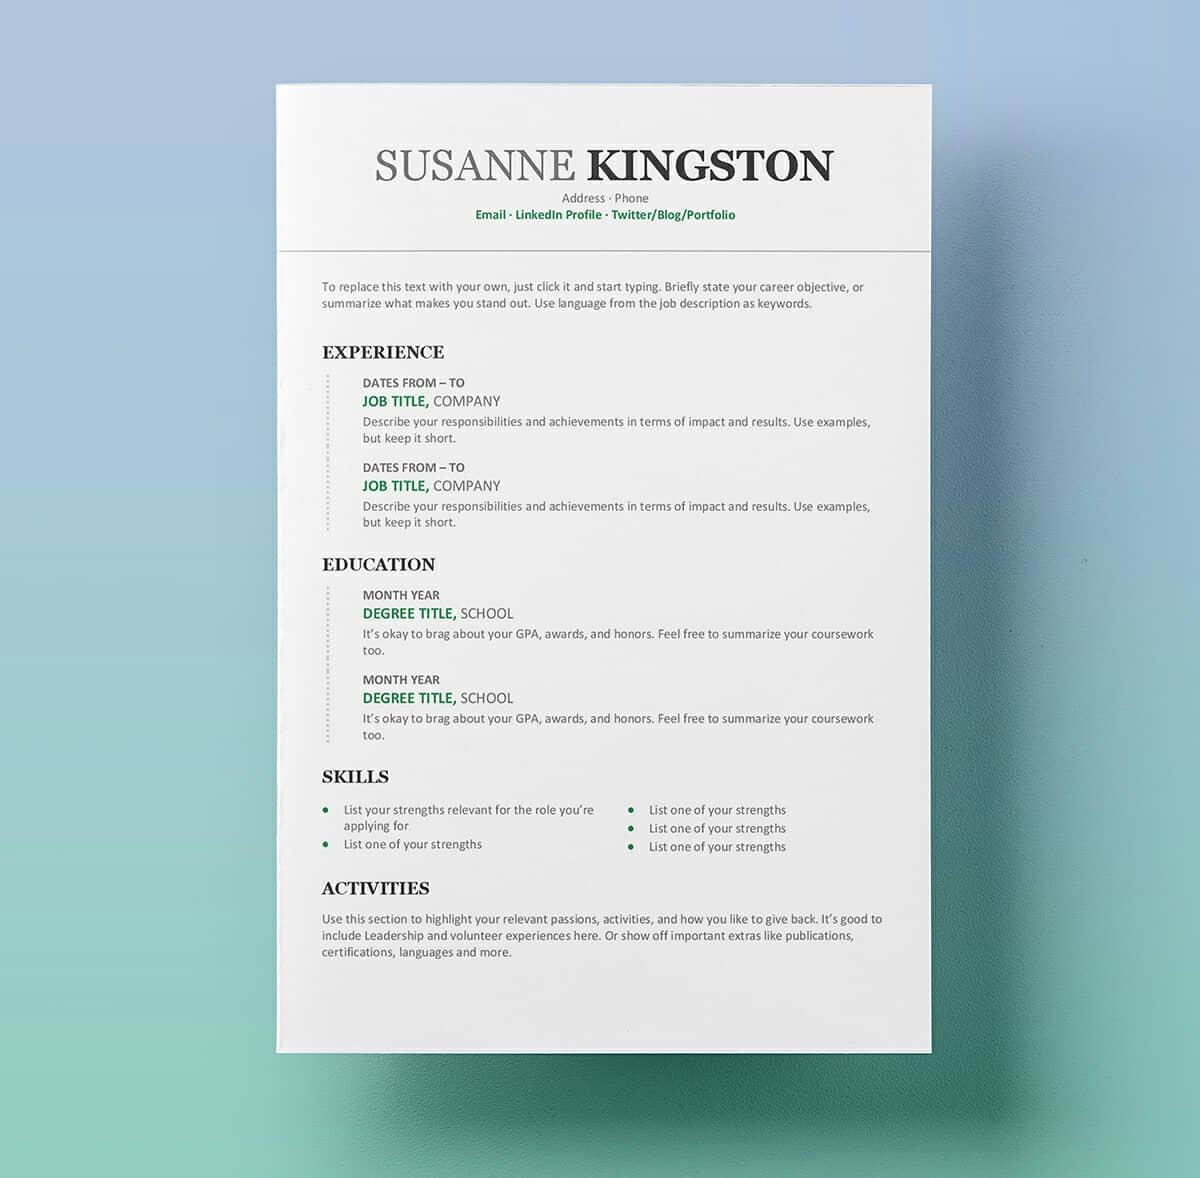 resume templates for microsoft word free standard template clinic motocross example Resume Standard Resume Template Word